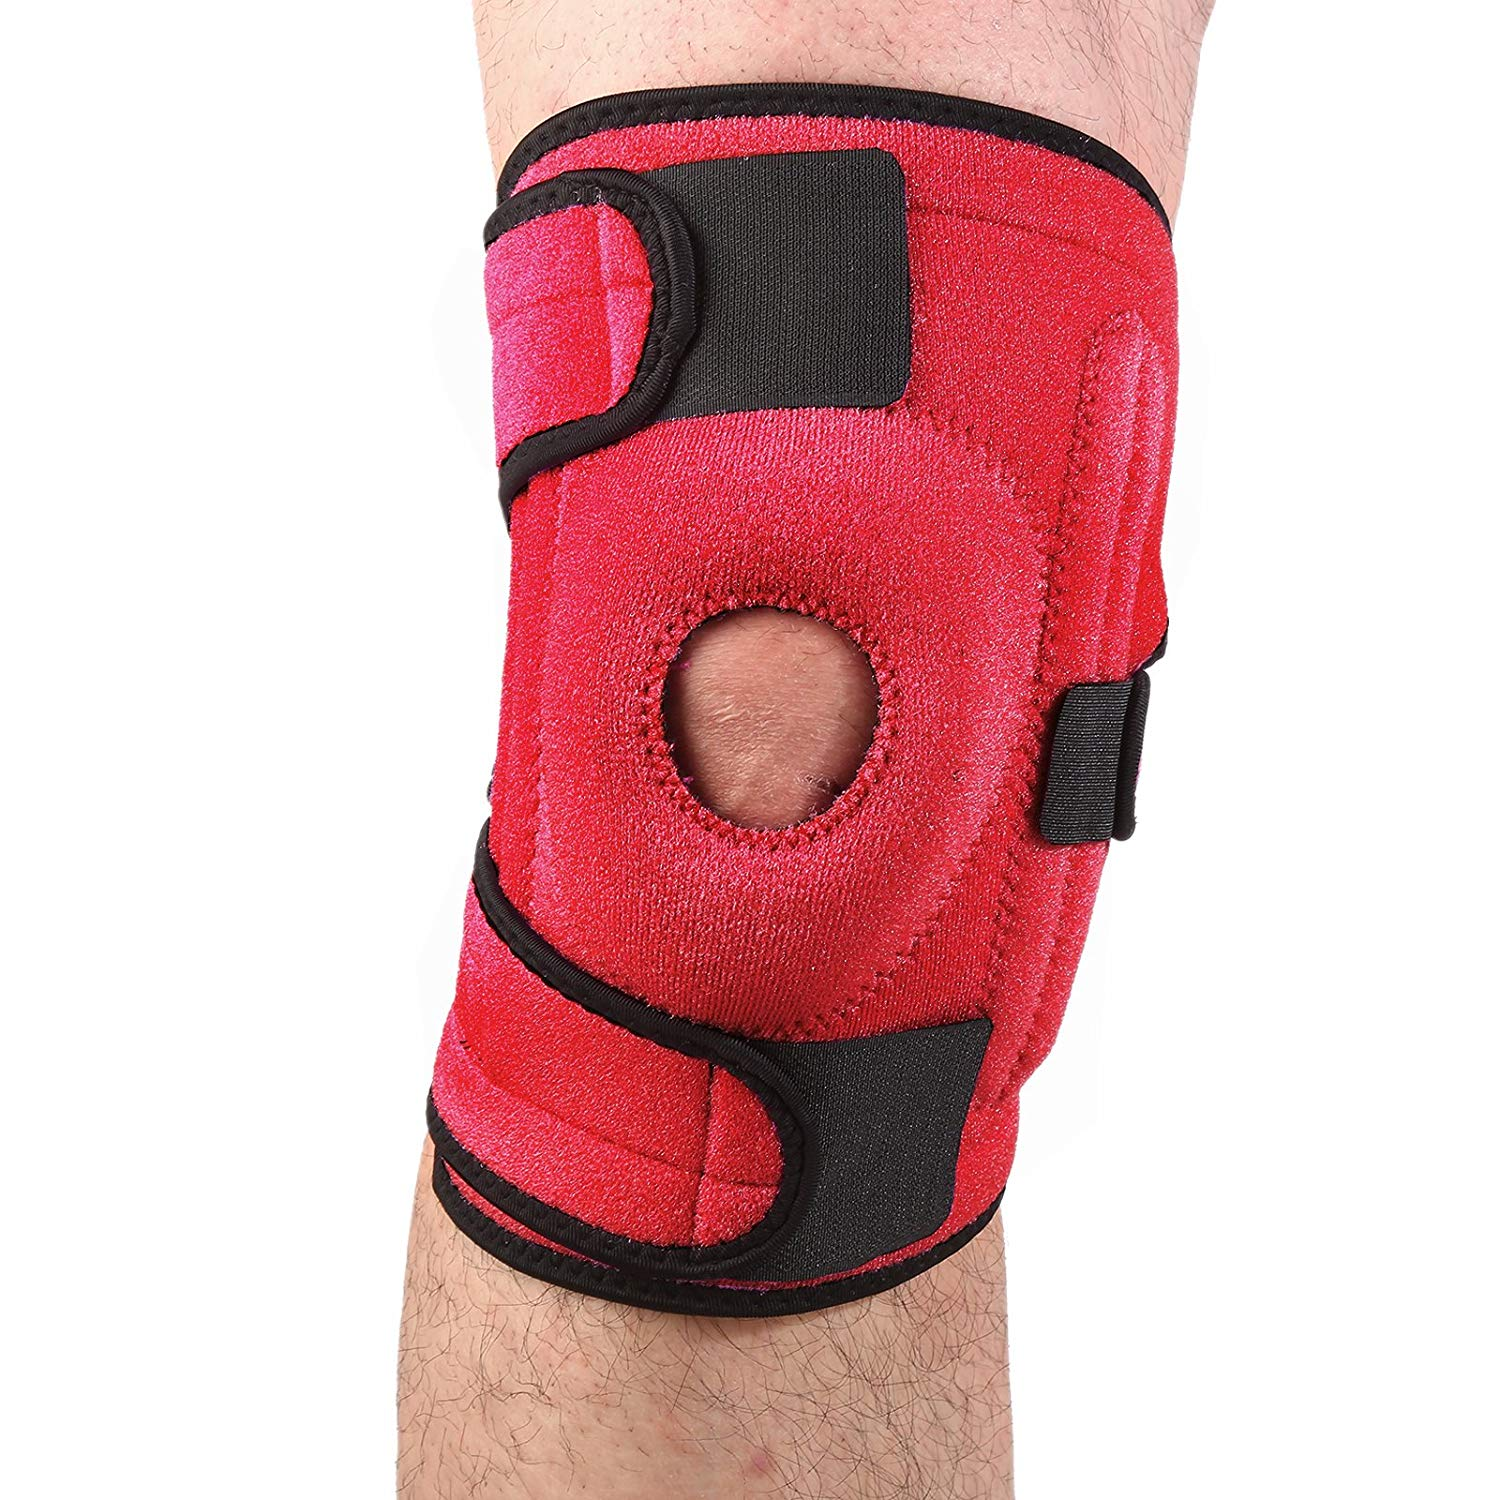 3dc9b53699 Get Quotations · RUNJOY Neoprene Patella Knee Brace Support for Men &  Women, Patella Knee Stabilizer Protector for